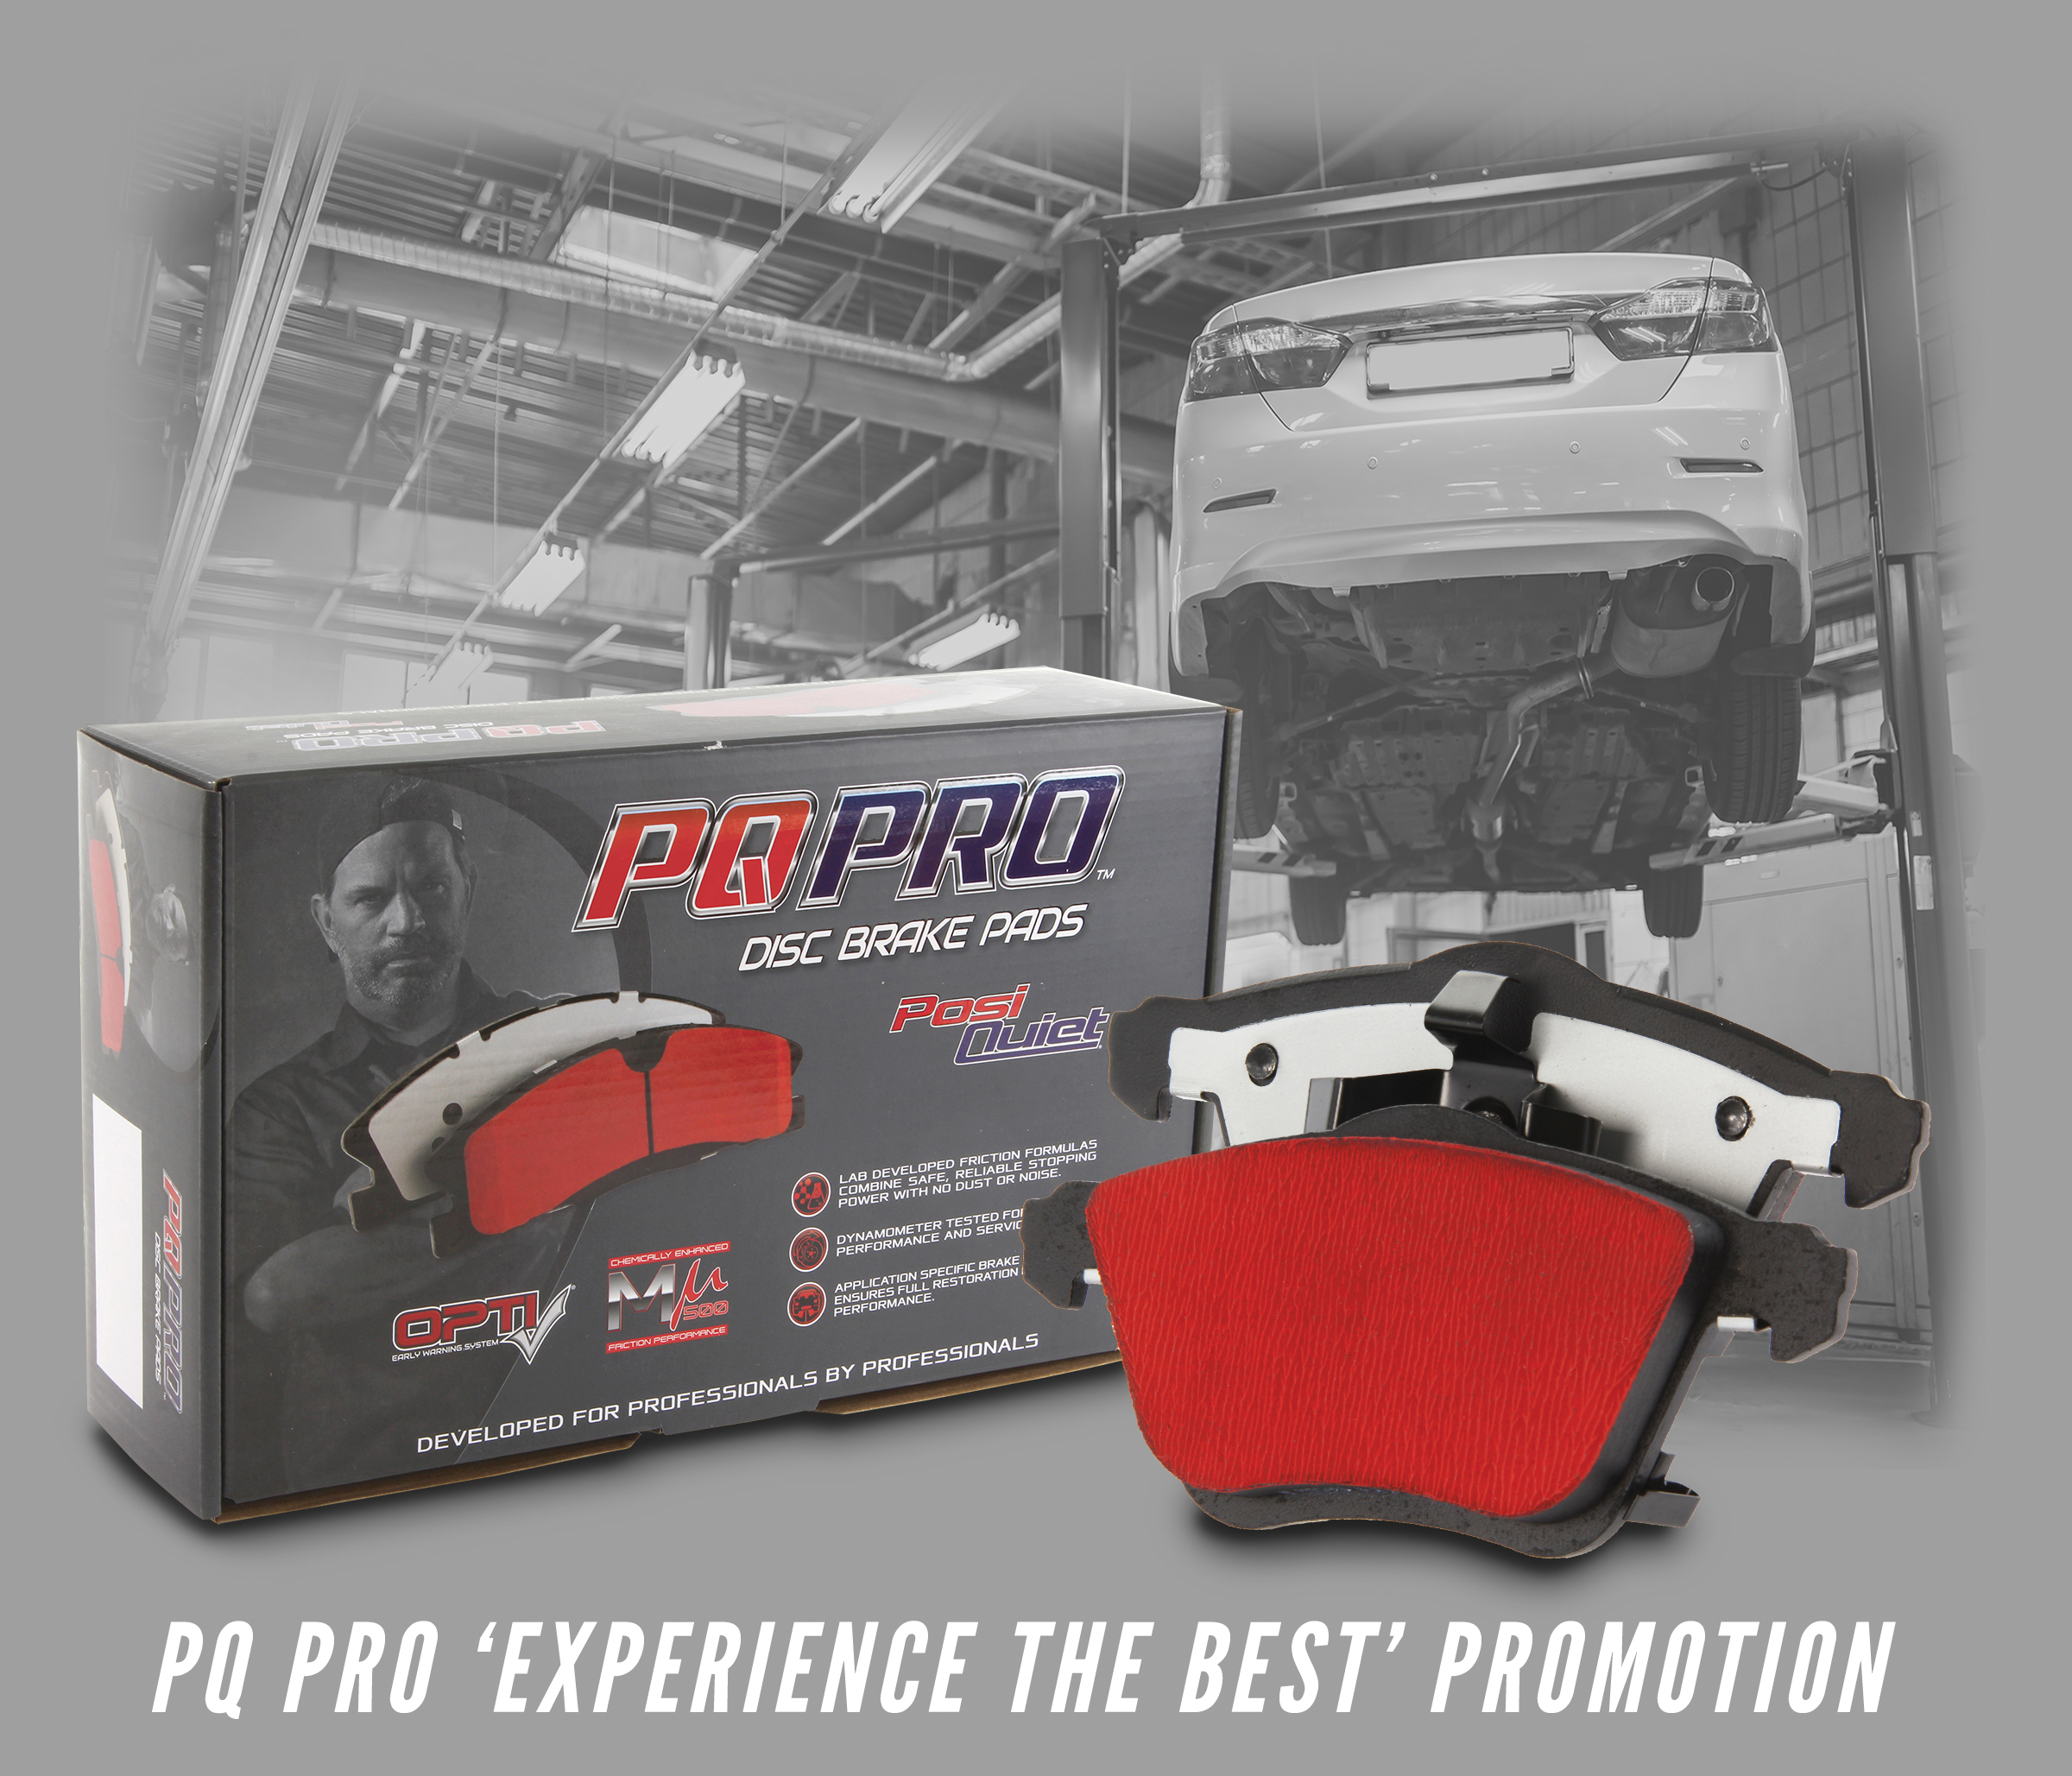 Centric Parts Launches PQ Pro 'Experience the Best' Promotion